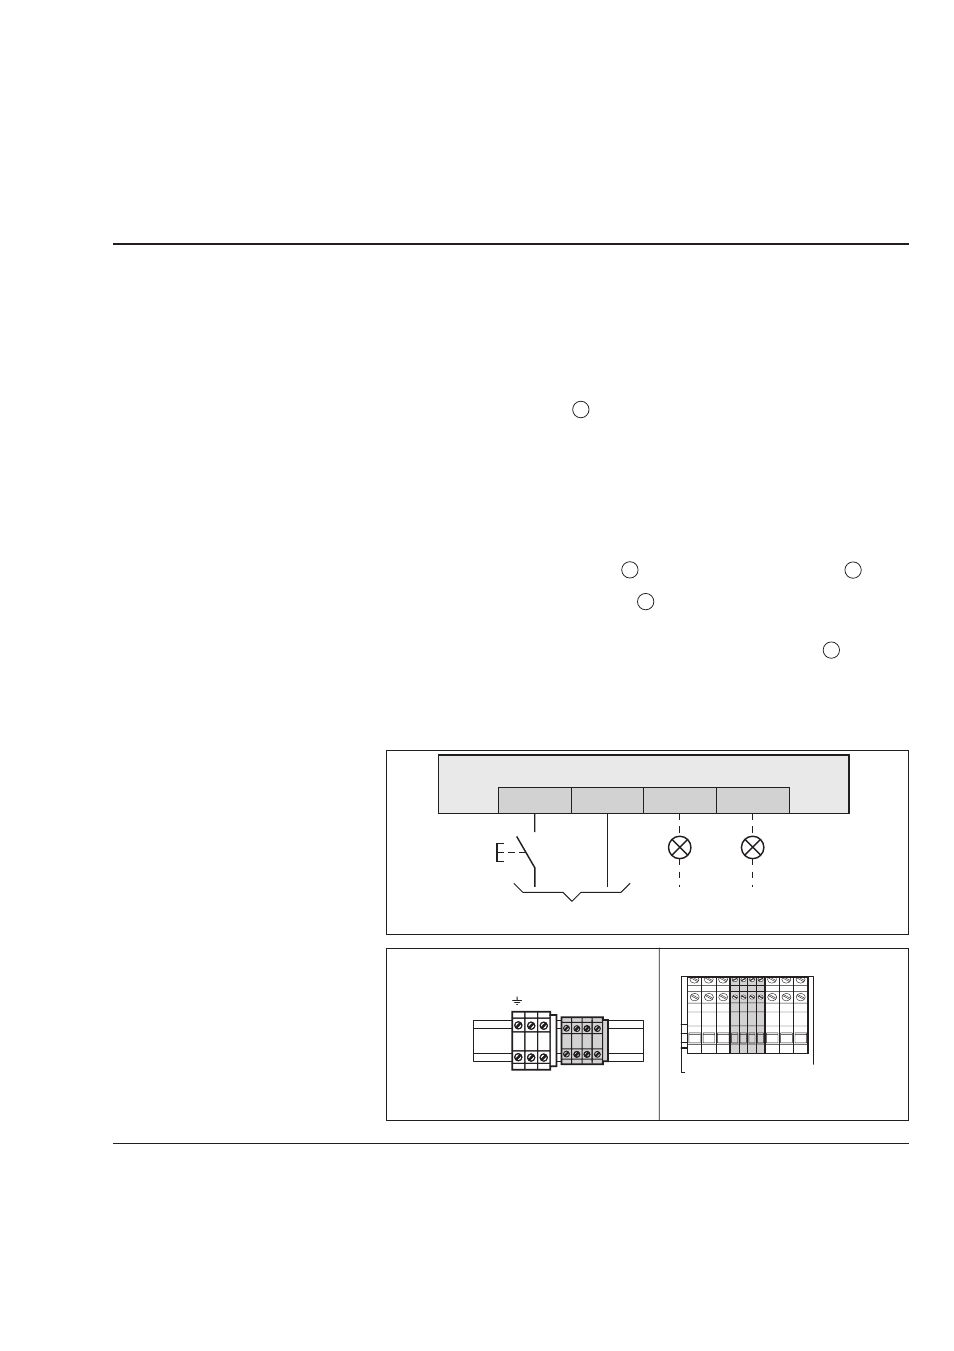 Emergency Off Shunt Trip Connection Mge Ups Systems Comet Tm 5 Wiring Diagram In Addition Breaker On 30 Kva User Manual Page 41 60